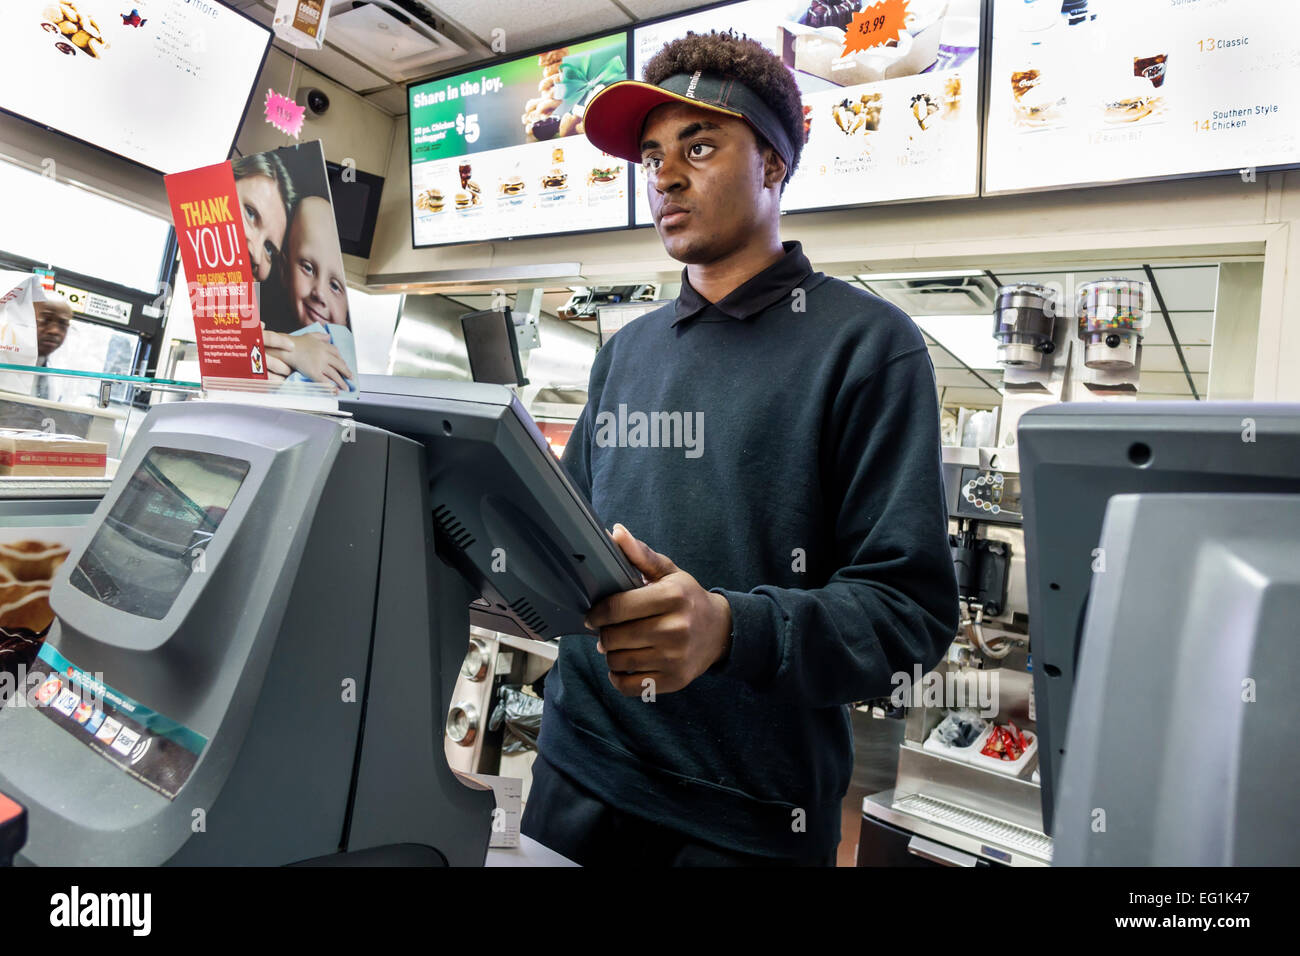 Florida Sebastian McDonald's restaurant fast food inside counter Black man cashier employee job working possible - Stock Image